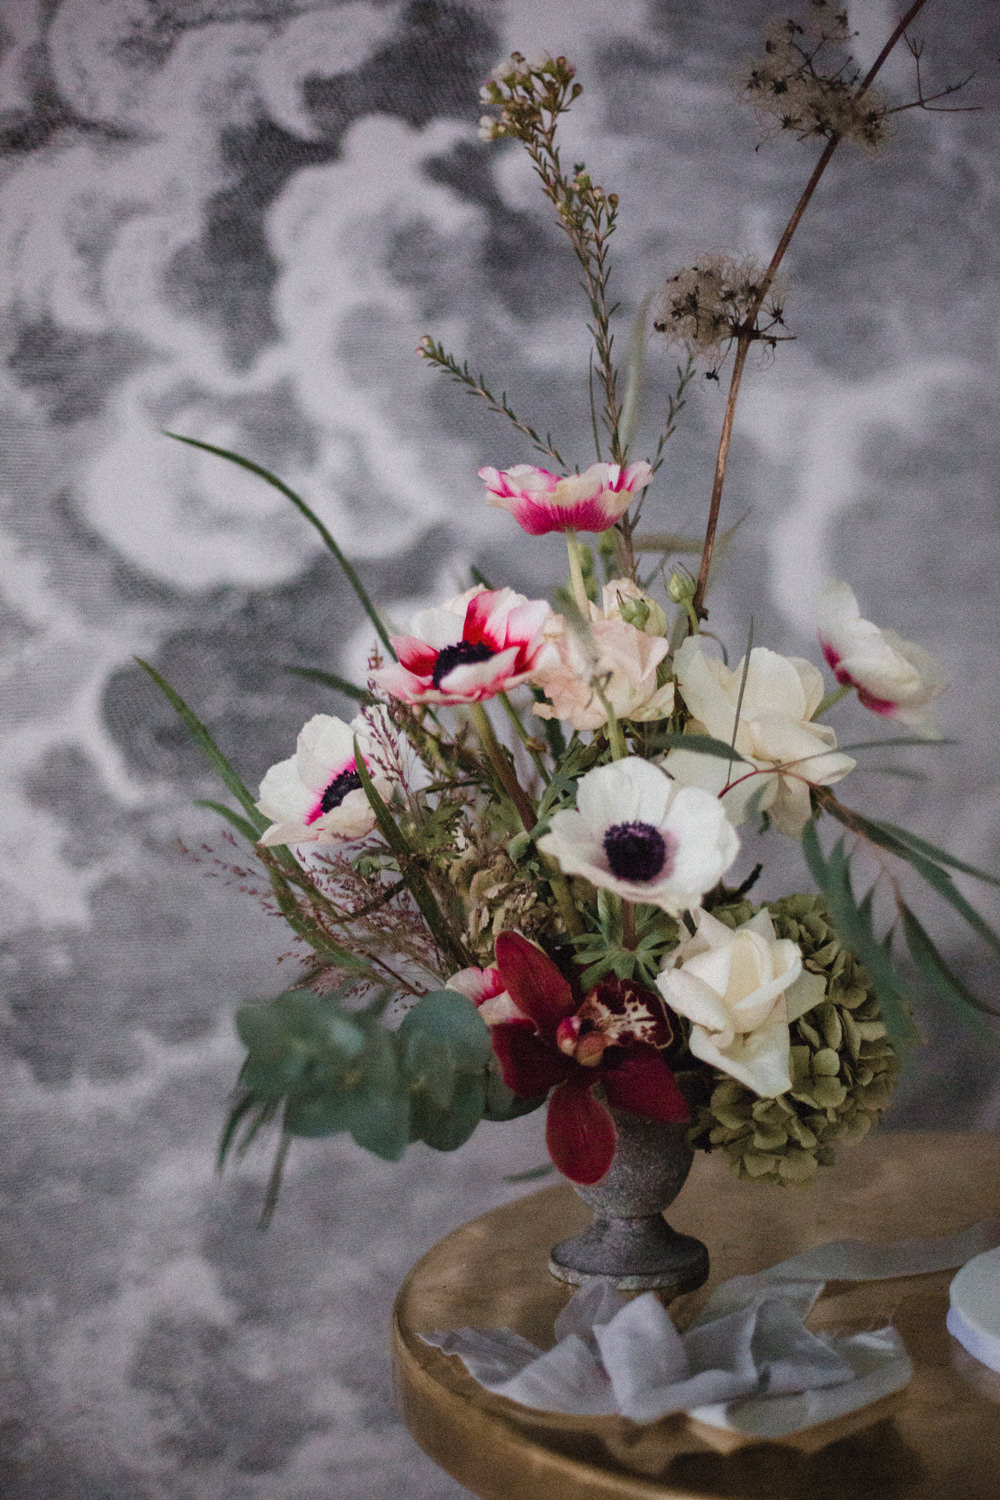 Flower Arrangement Anemone Whimsical Elegant Wedding Ideas Mandorla London